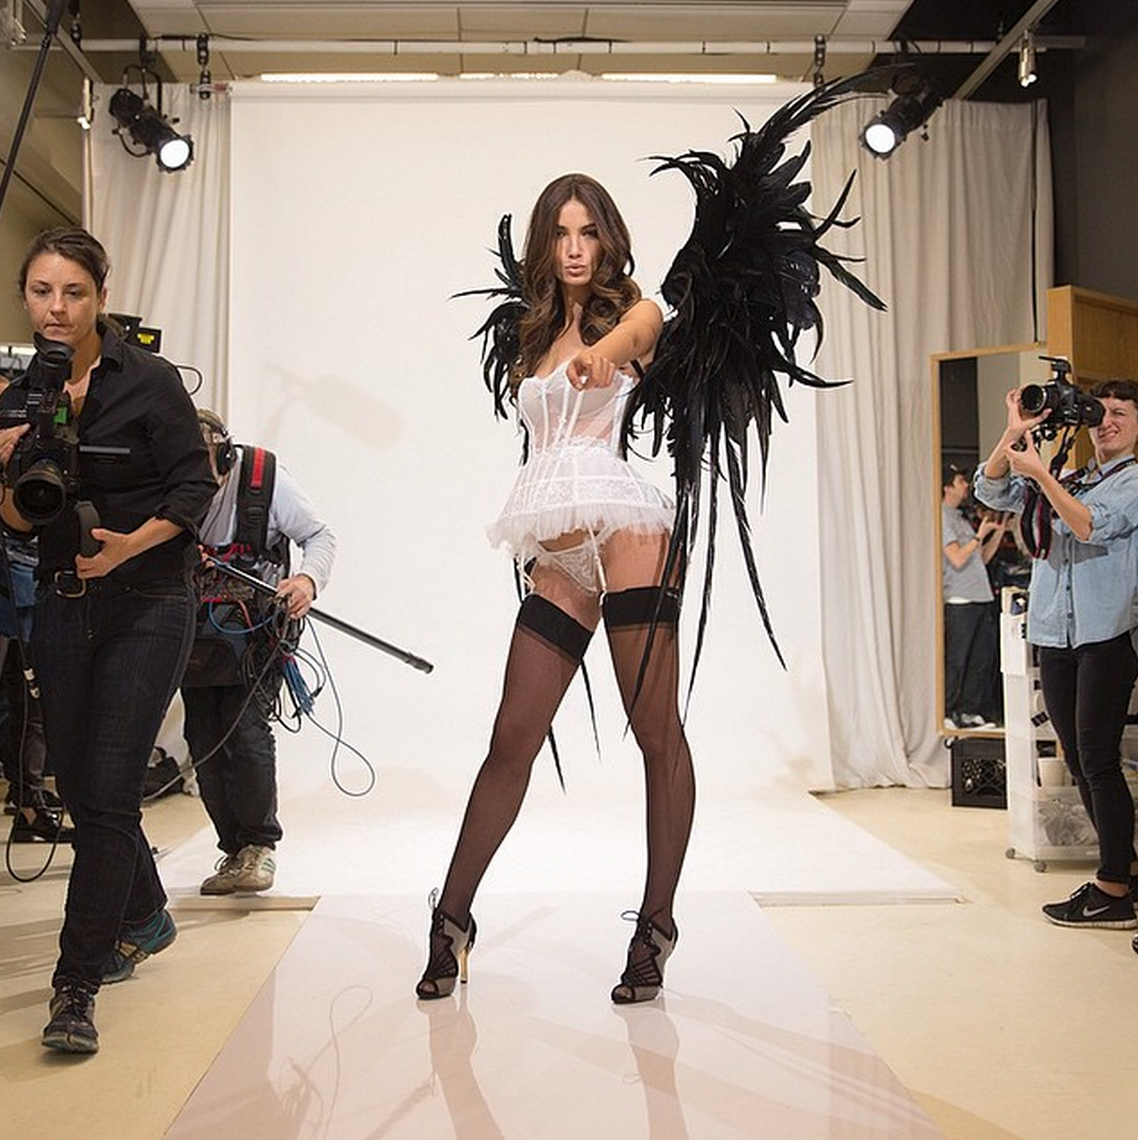 Preview: See what the Angels will be wearing on the Victoria's Secret catwalk http://t.co/Iq9tJ4sEVd #VSFashionShow http://t.co/tEPbgIkqLn